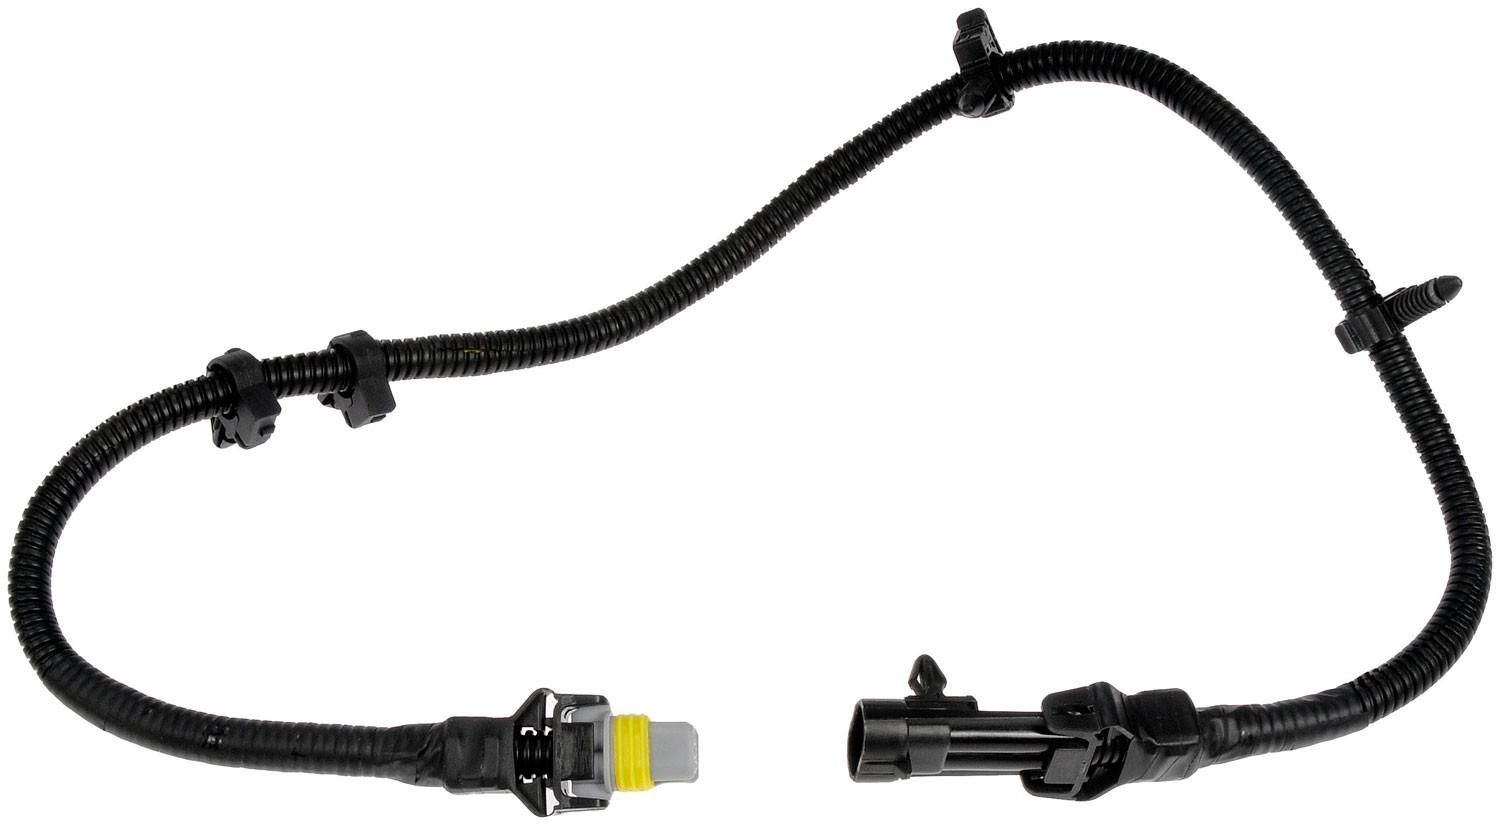 Dorman Front ABS Sensor Wire Harness for Montana Venture